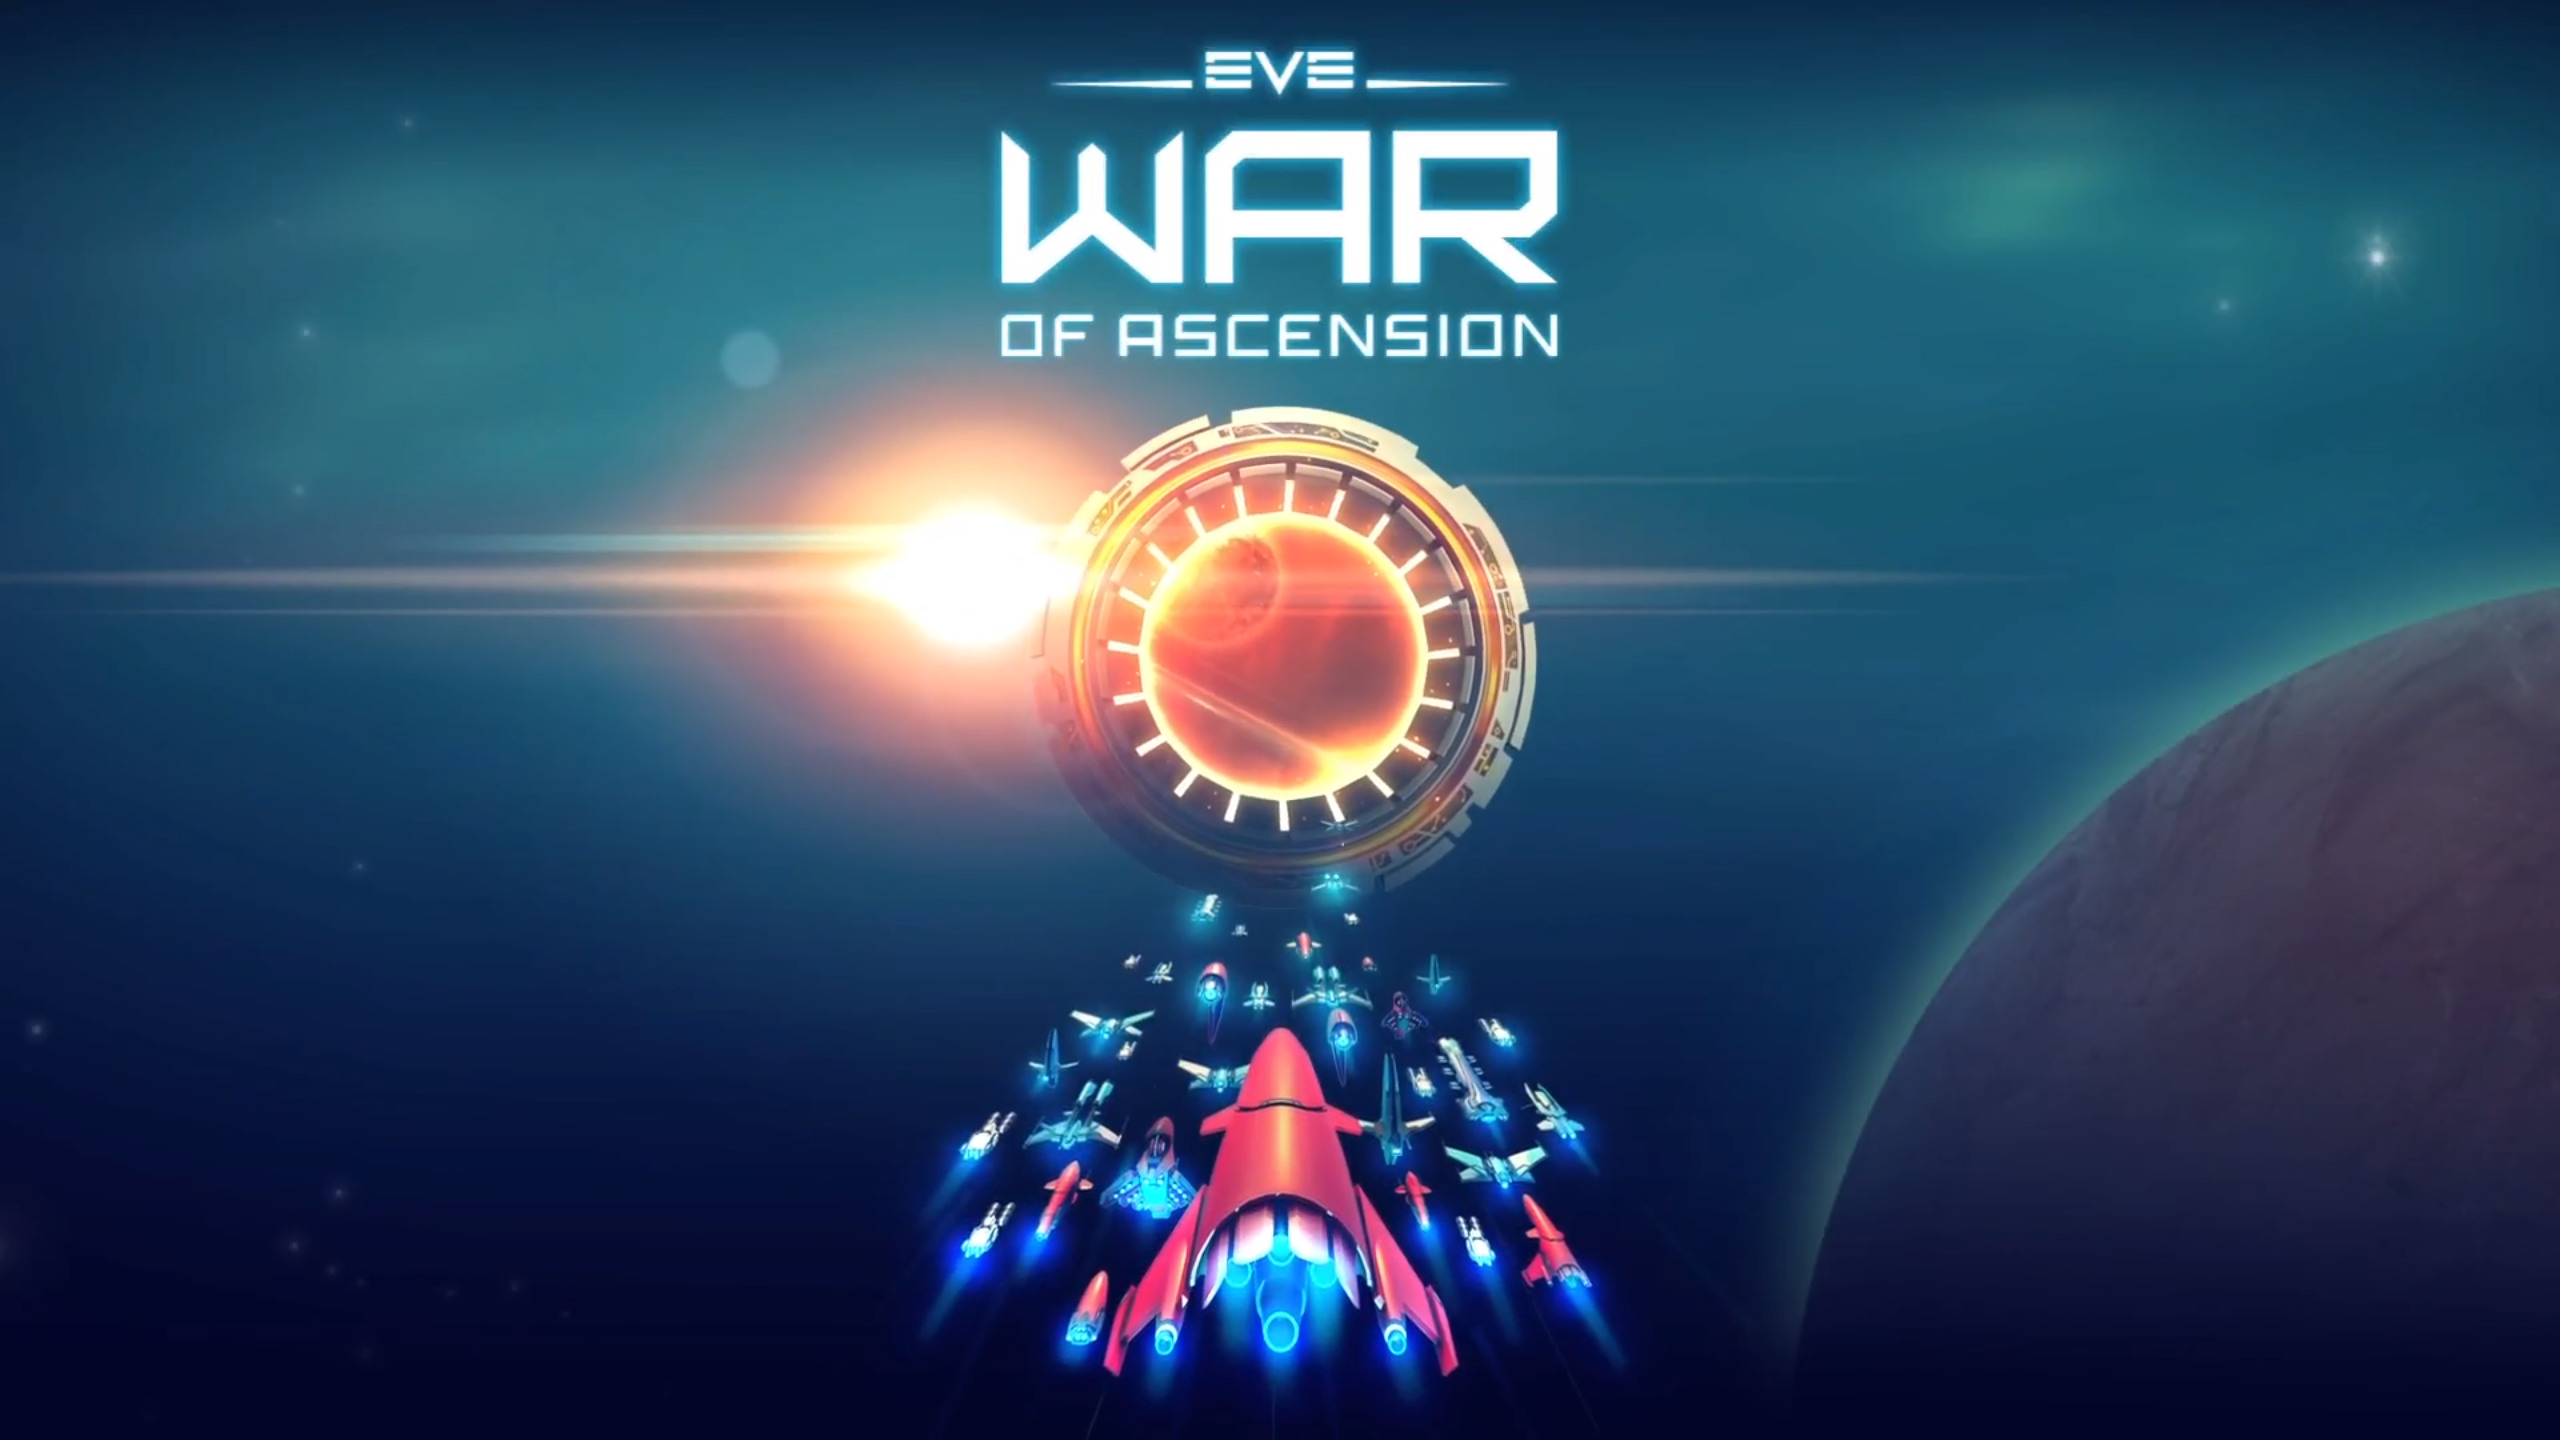 EVE: War of Ascension is on the Play Store, but you probably can't